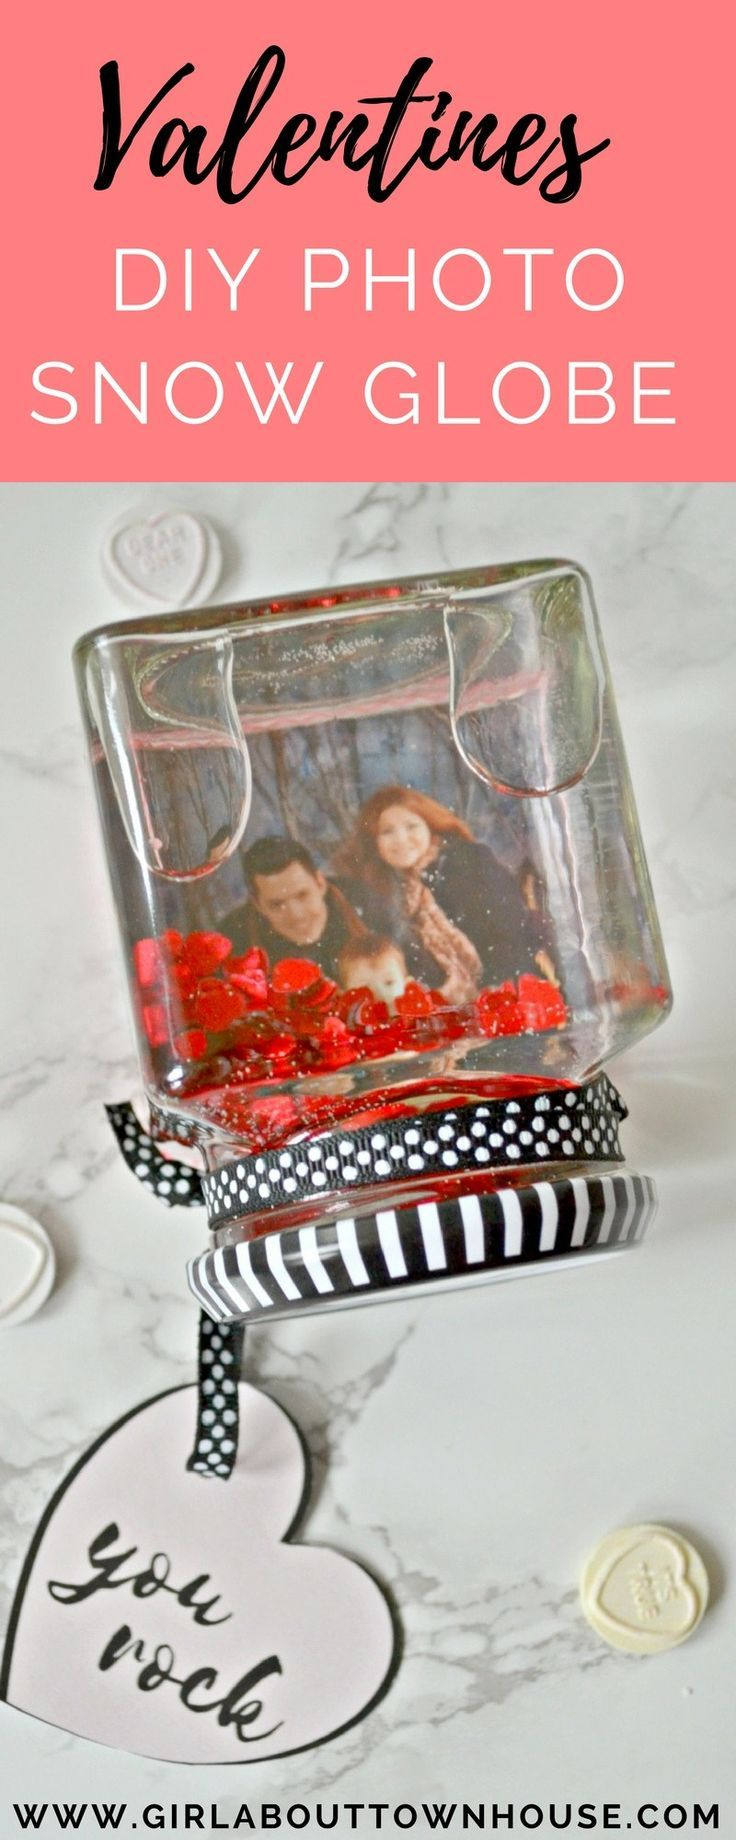 Valentine's DIY Photo Snow Globe. A simple valentines DIY gift perfect for someone special.